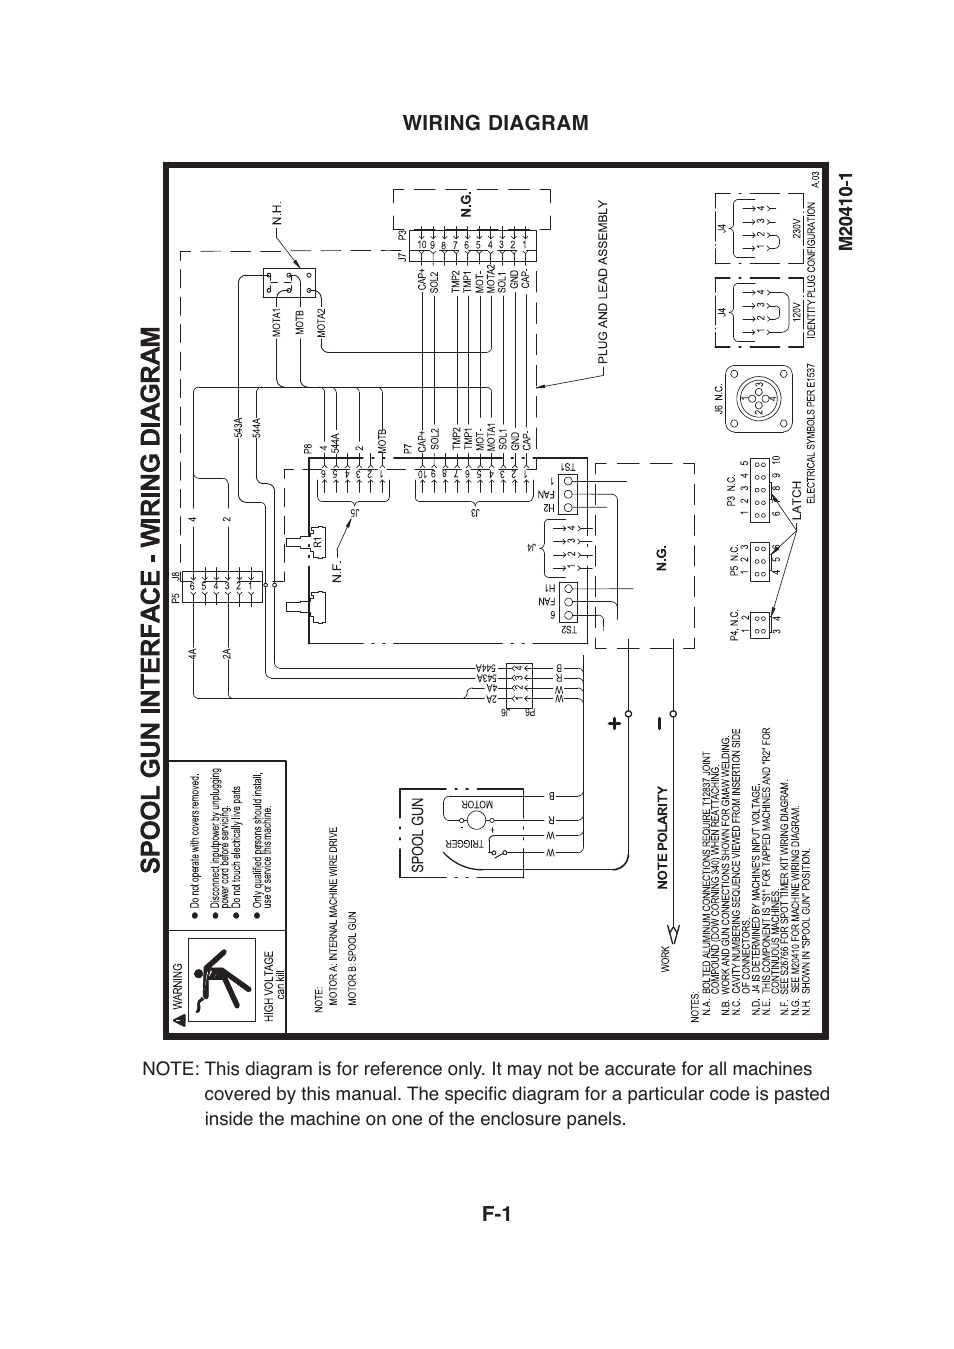 wiring diagram f-1 | lincoln electric imt913 magnum 100sg ... lincoln traps wiring diagram lincoln engine wiring diagram